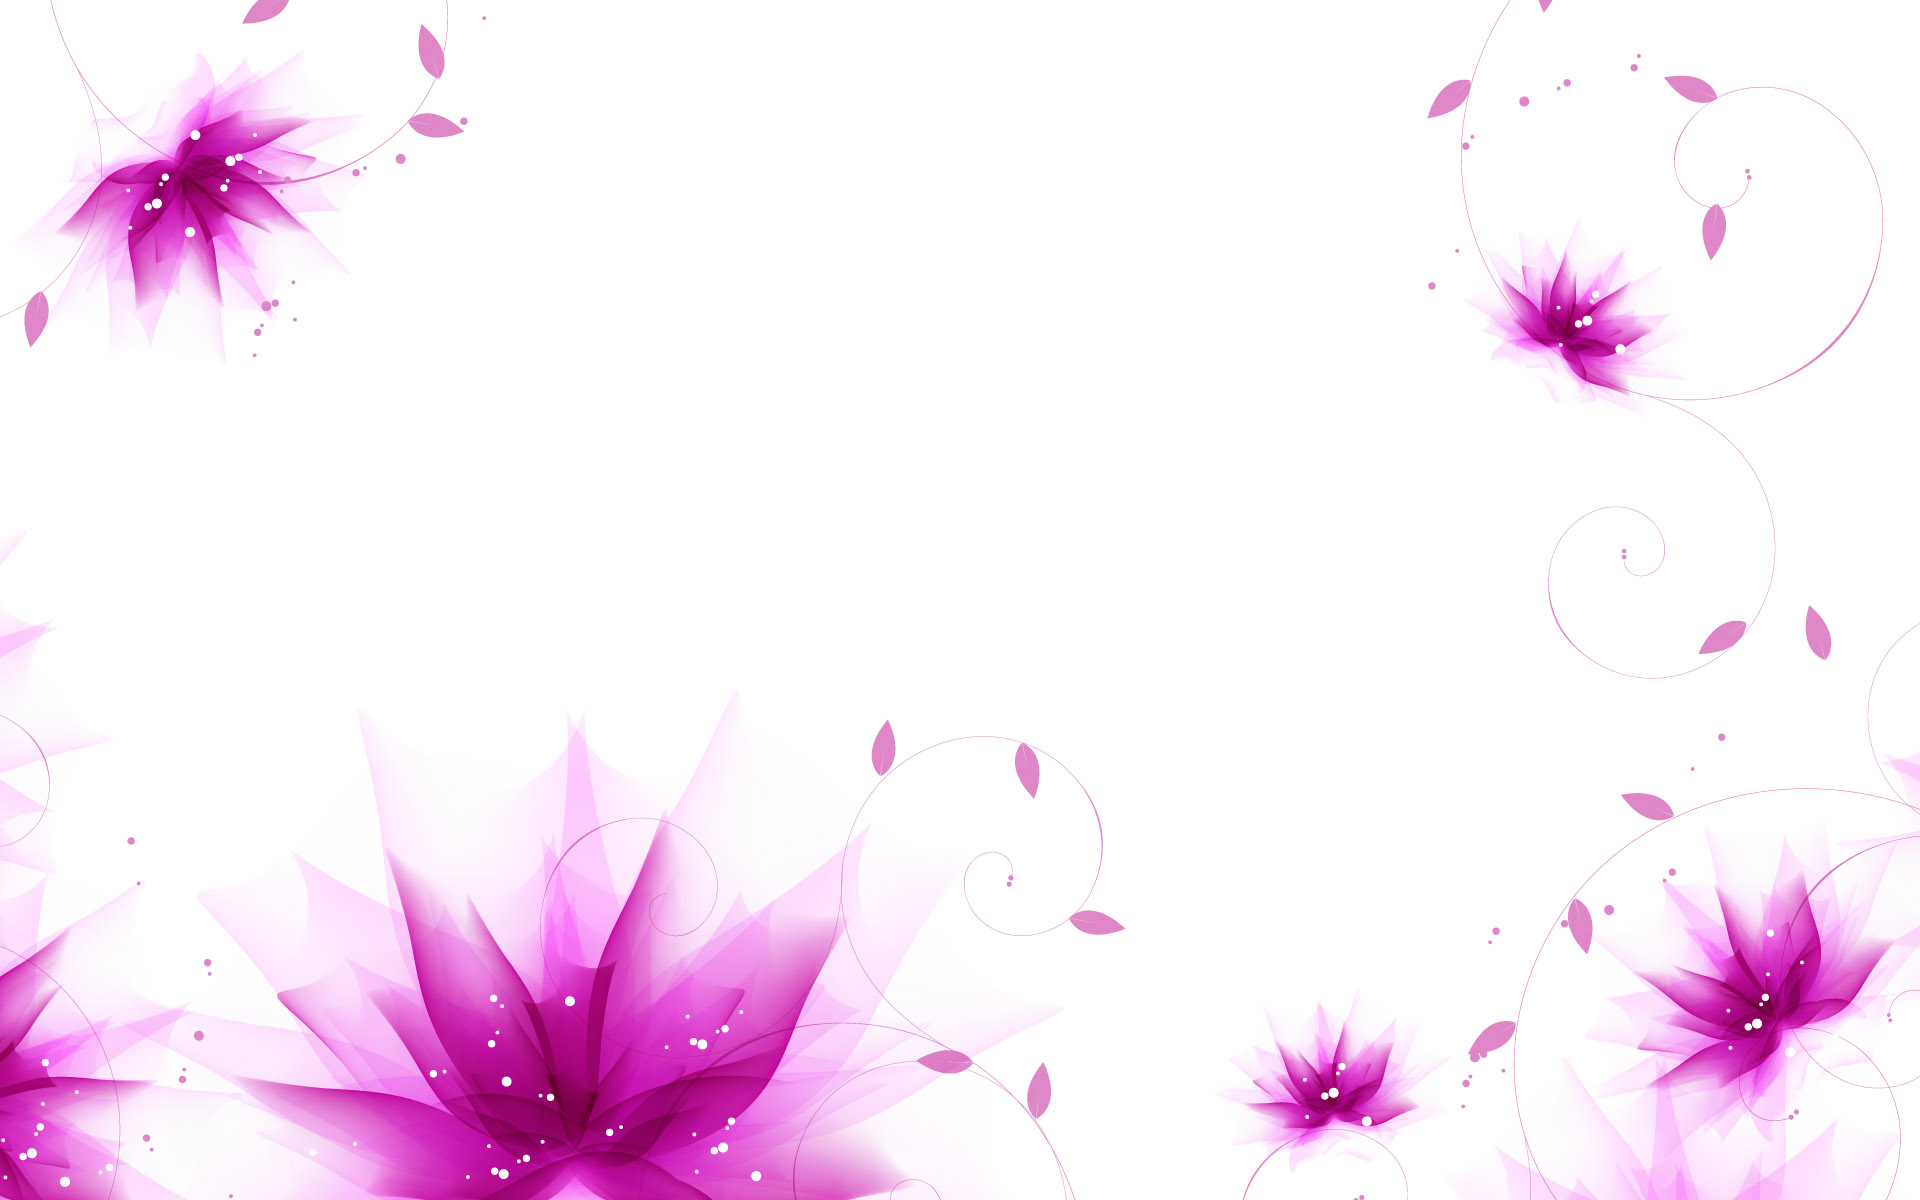 Background color 18244